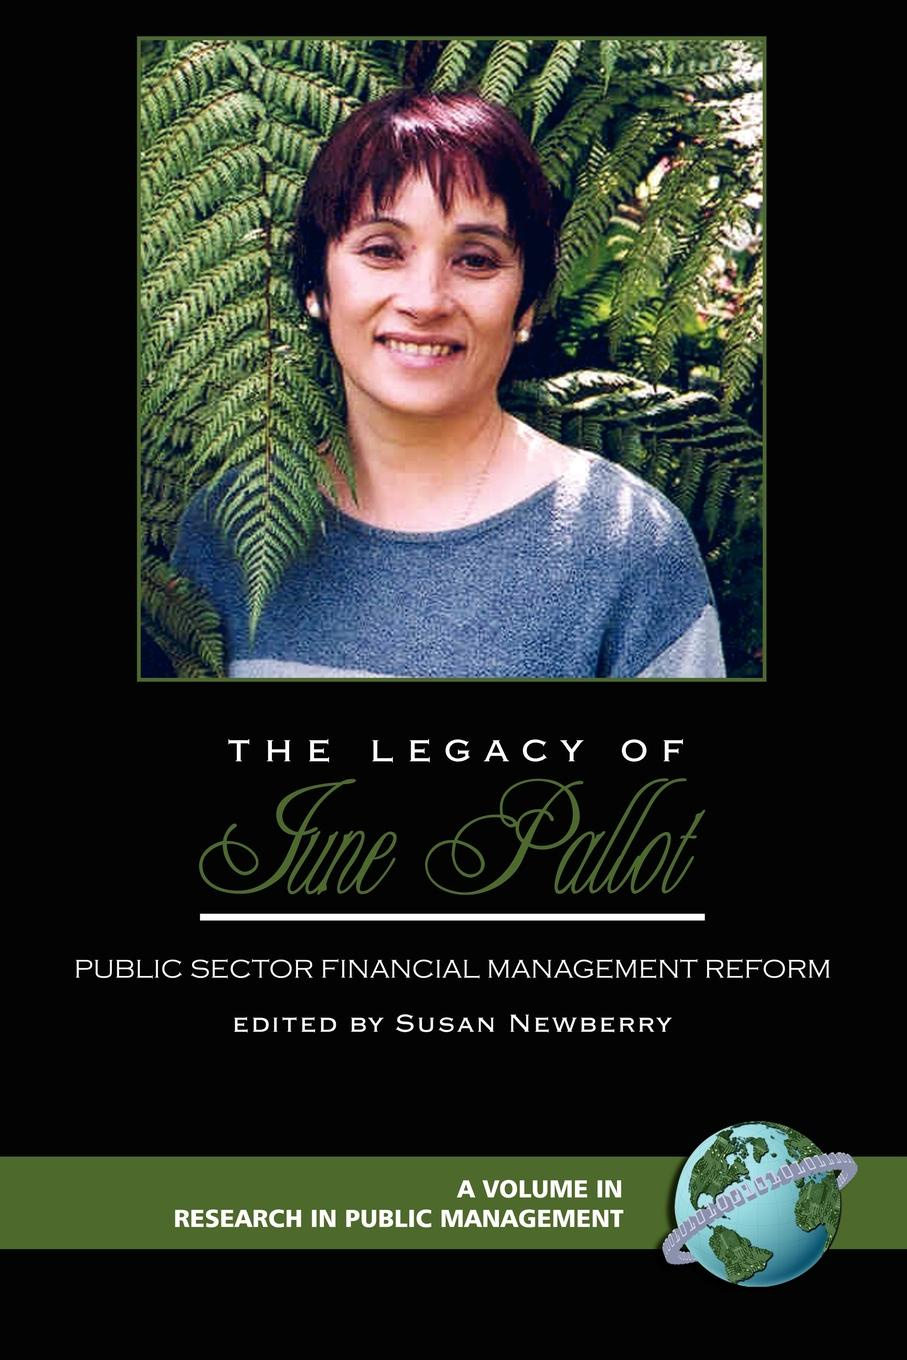 The Legacy of June Pallot. Public Sector Financial Management Reform (PB) indonesian government accounting reform